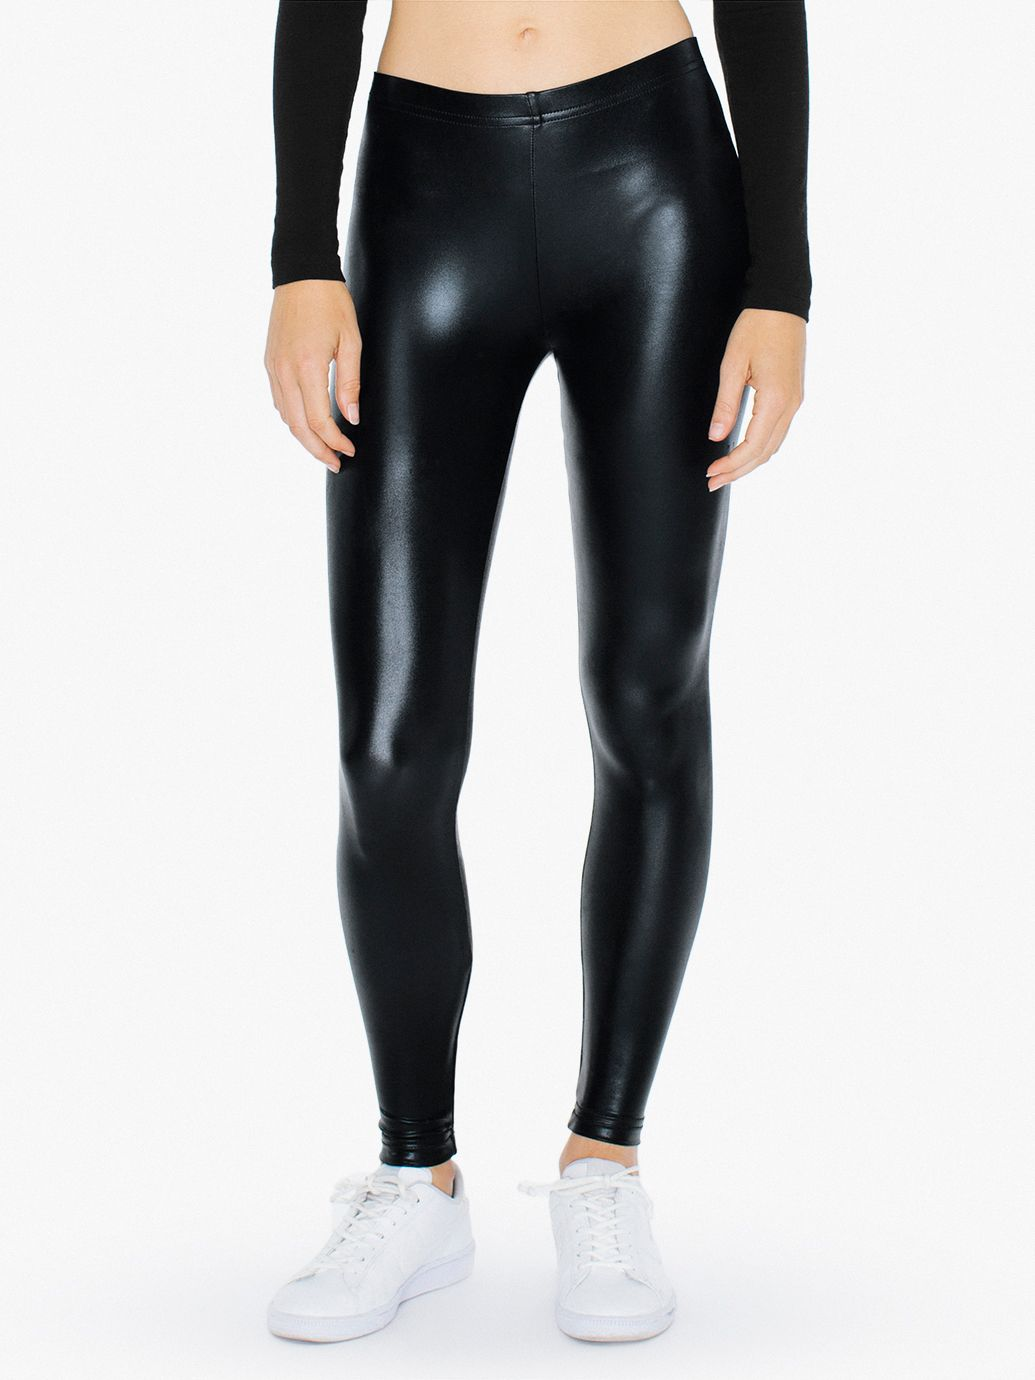 Black Shiny Leggings River Island